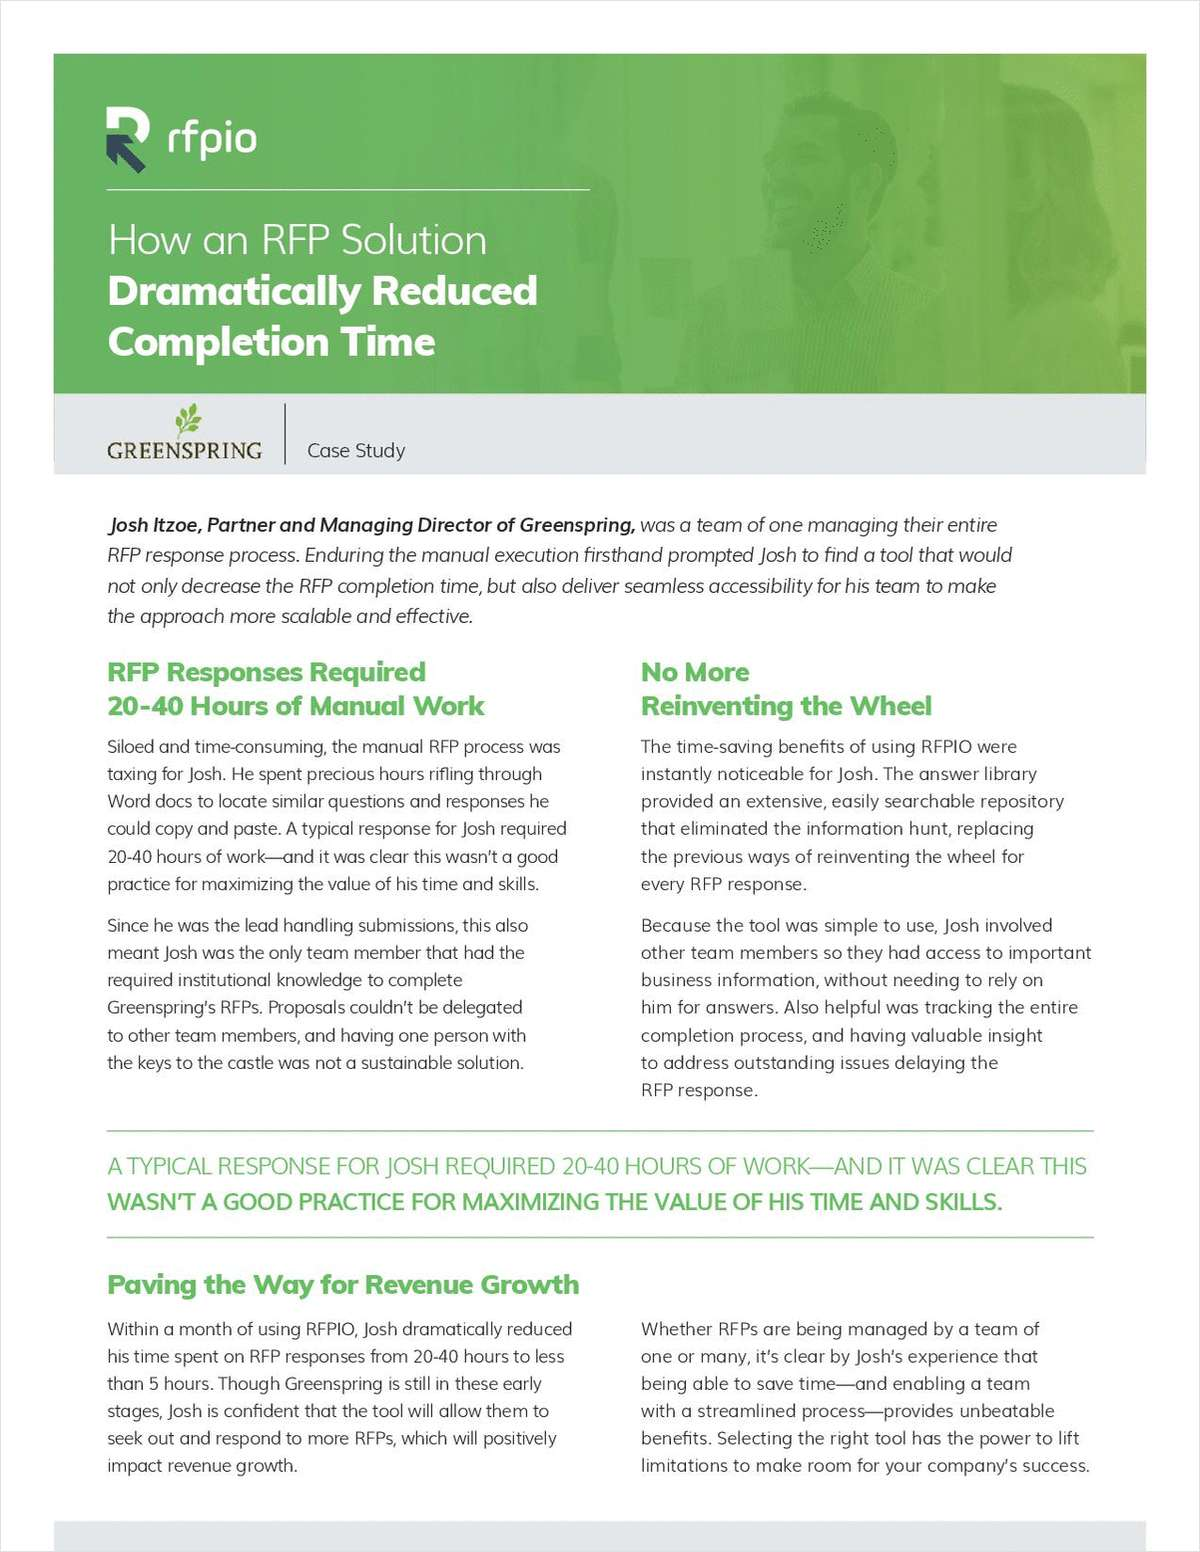 How RFP Software Dramatically Reduced Response Completion Time